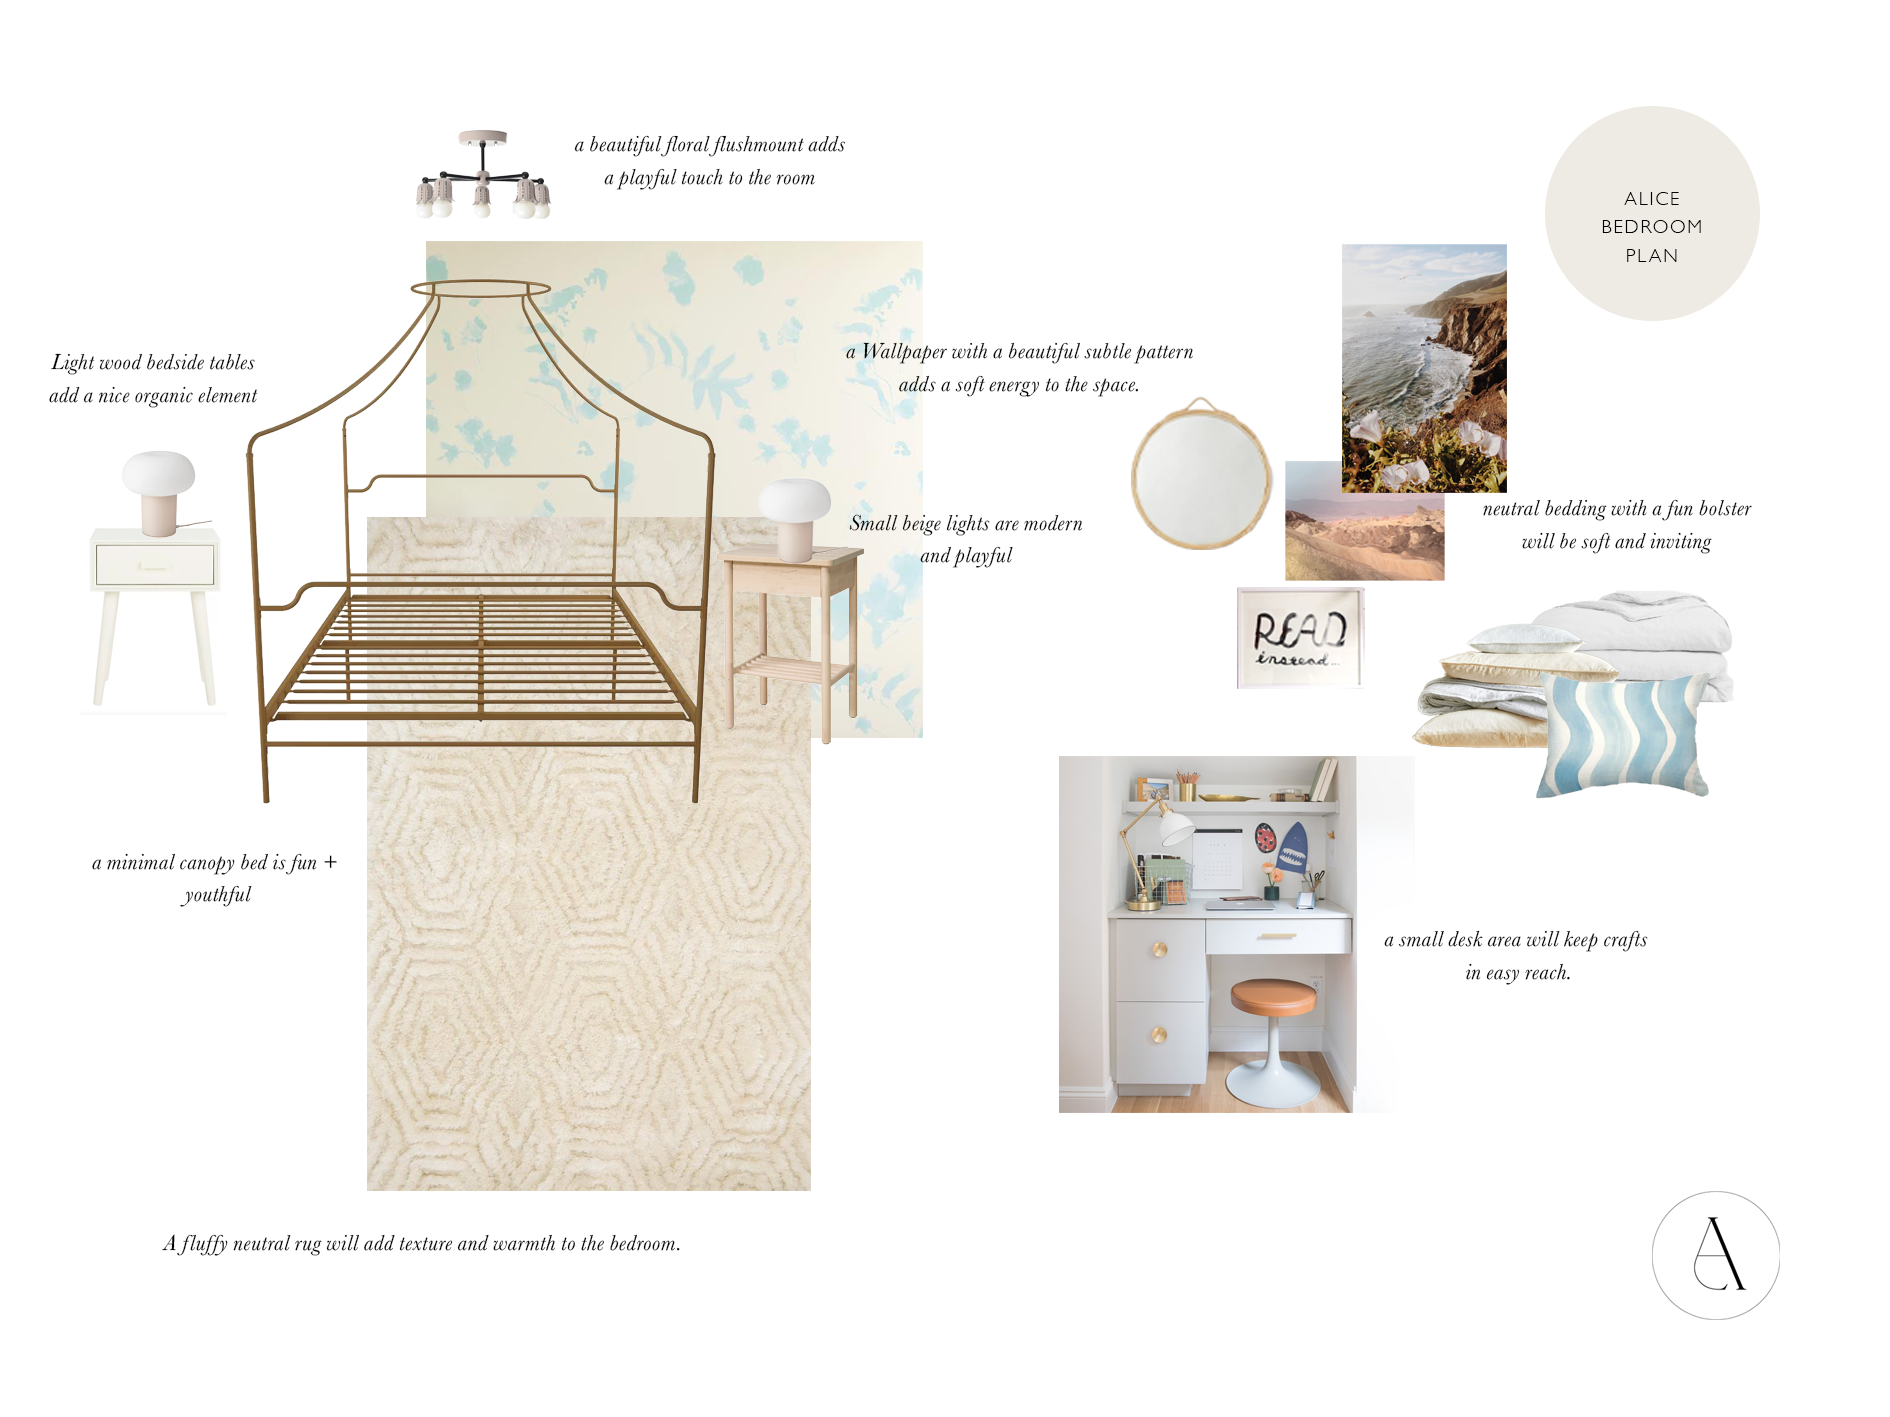 Girls bedroom design plan with a canopy bed, area rug, cream and blue